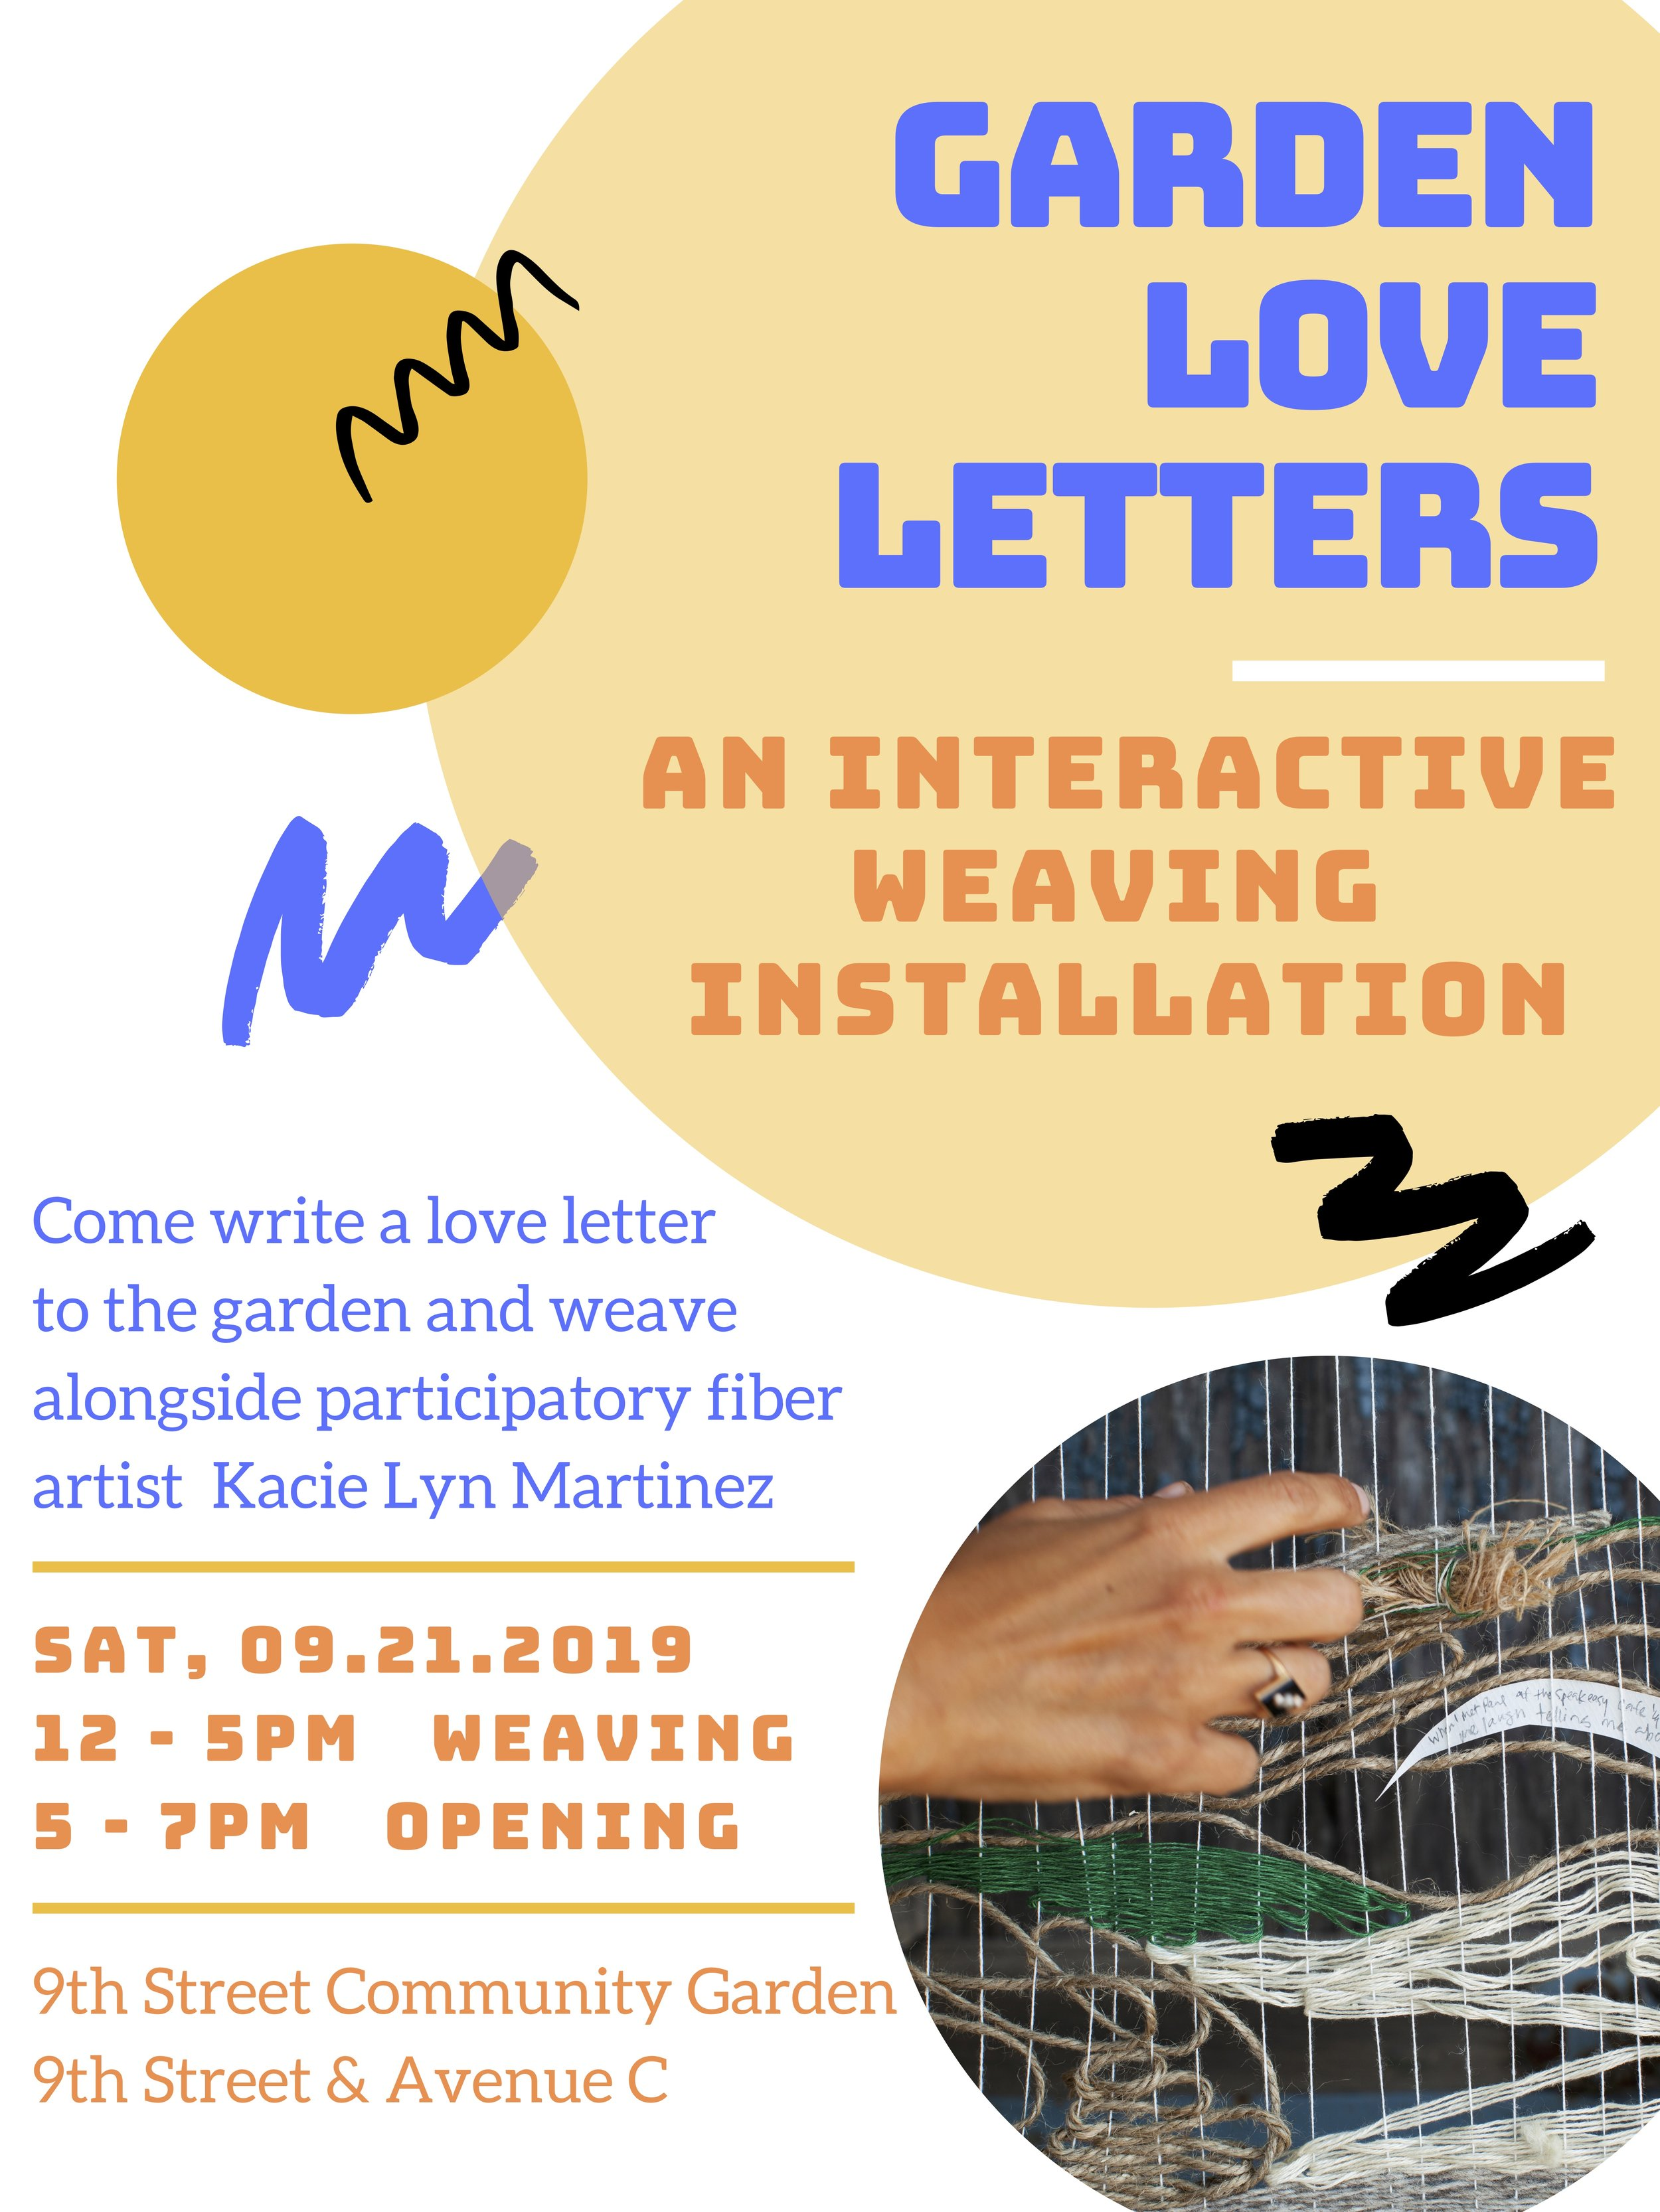 garden love letters_ an interactive weaving installation.jpg